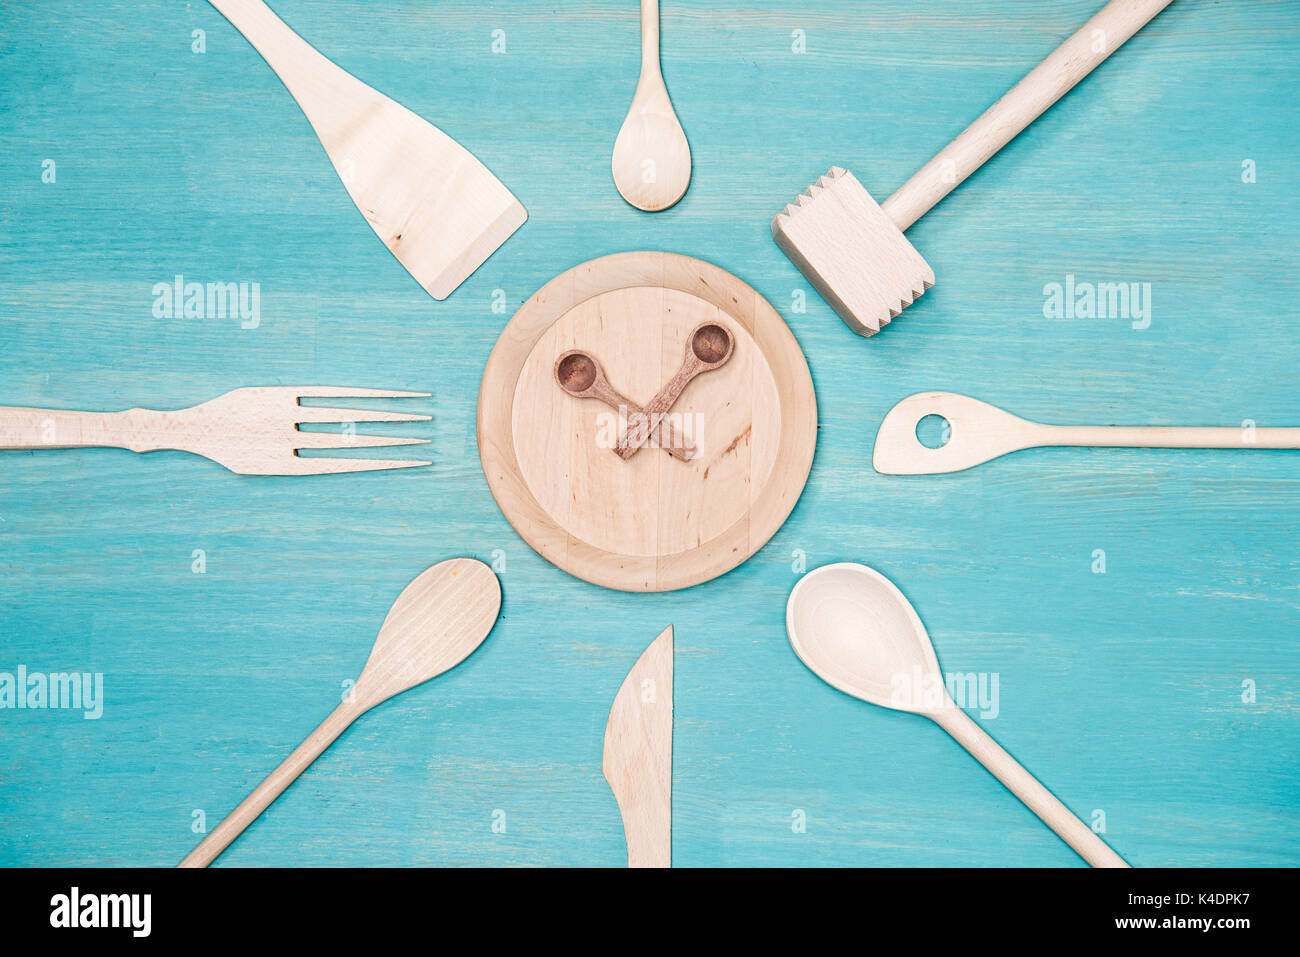 Knife And Fork Sign Stock Photos & Knife And Fork Sign Stock Images ...